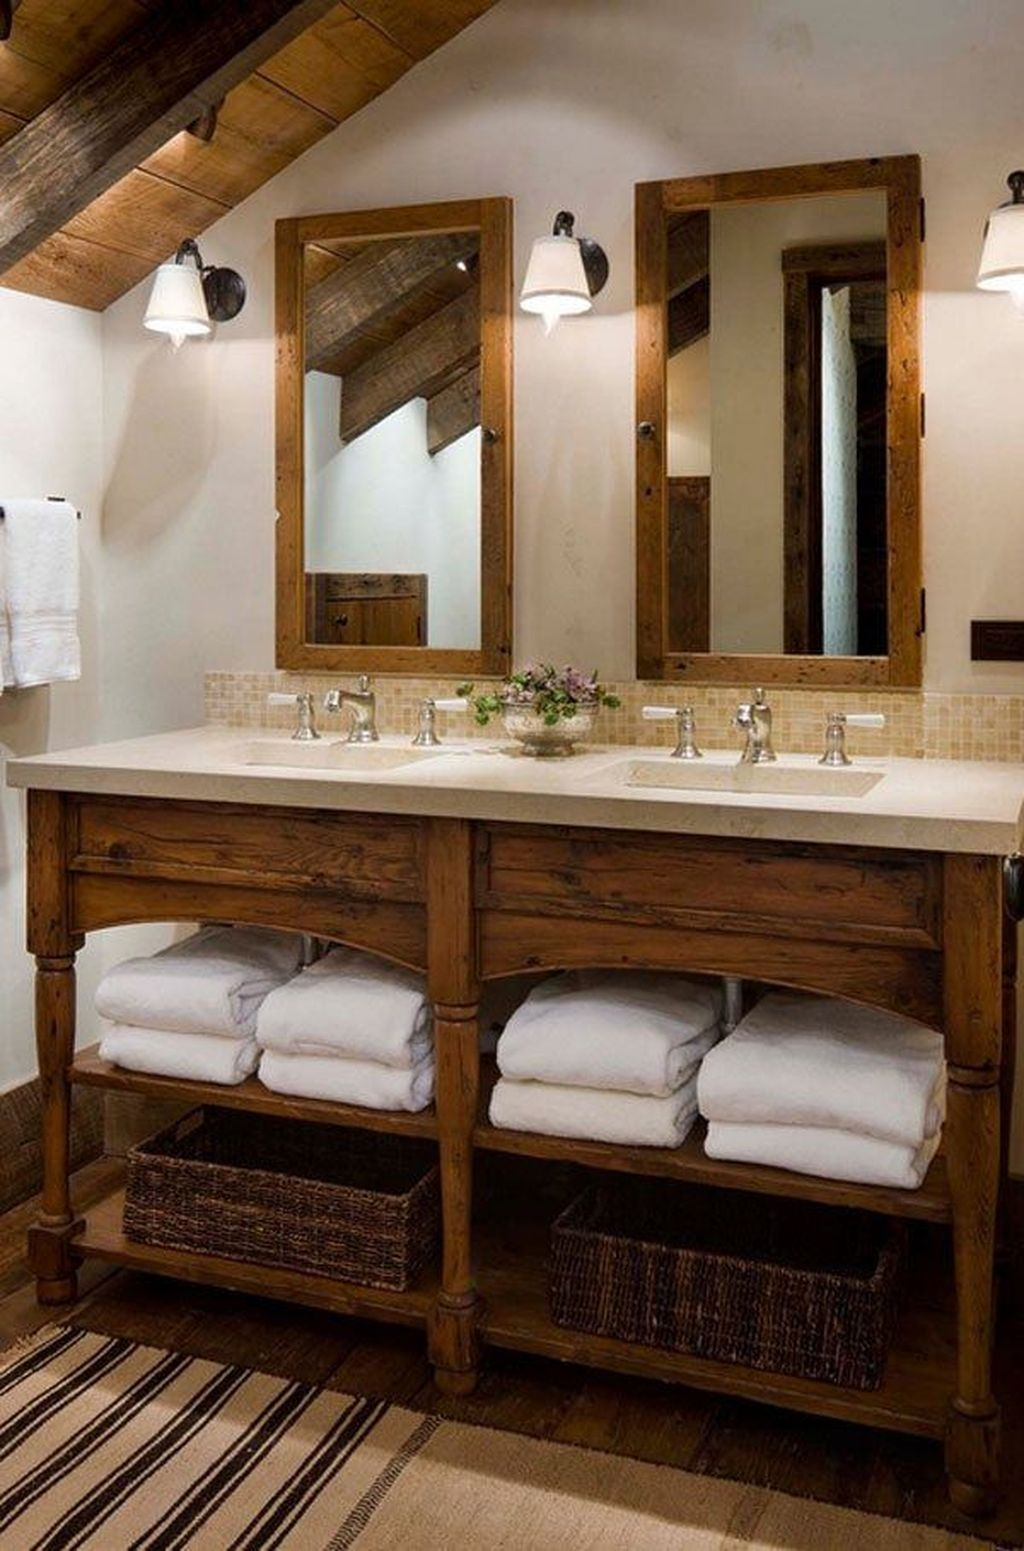 Cool Rustic Modern Bathroom Remodel Ideas 04